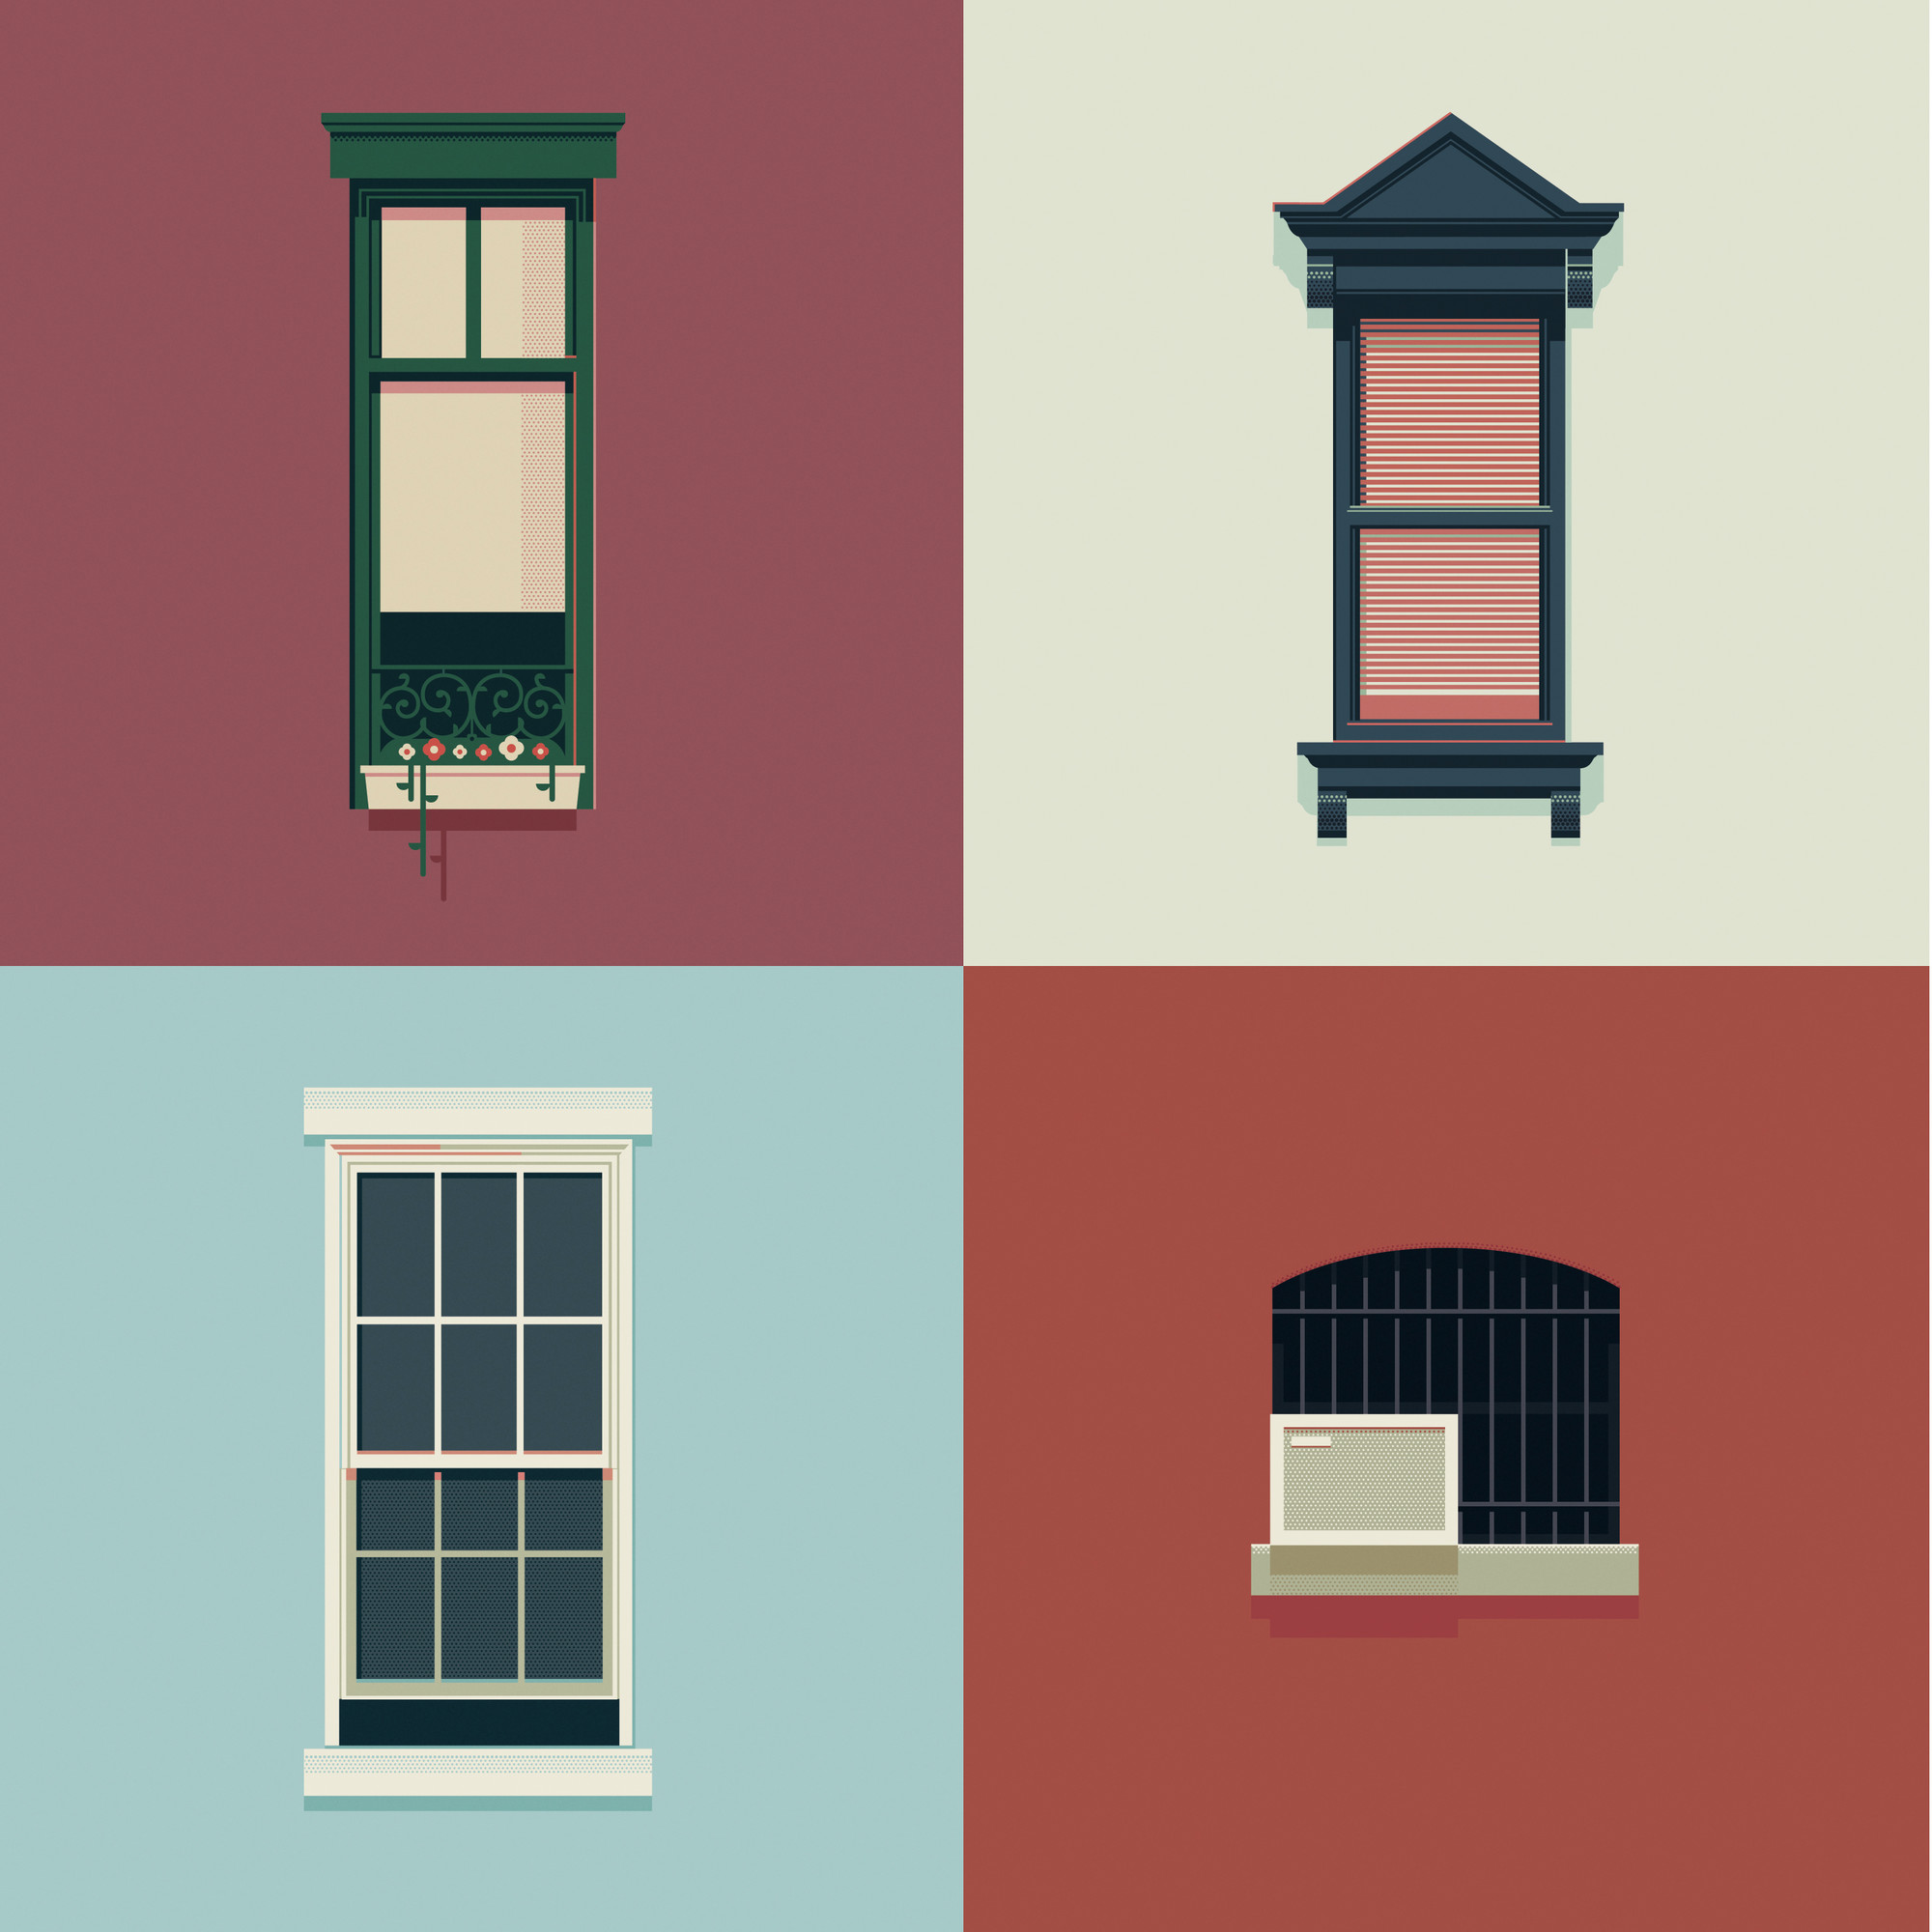 The Windows of New York and São Paulo , New York City-based graphic designer José Guizar's captures the city's eclectic array of windows through his weekly illustrations. Image Courtesy of José Guizar